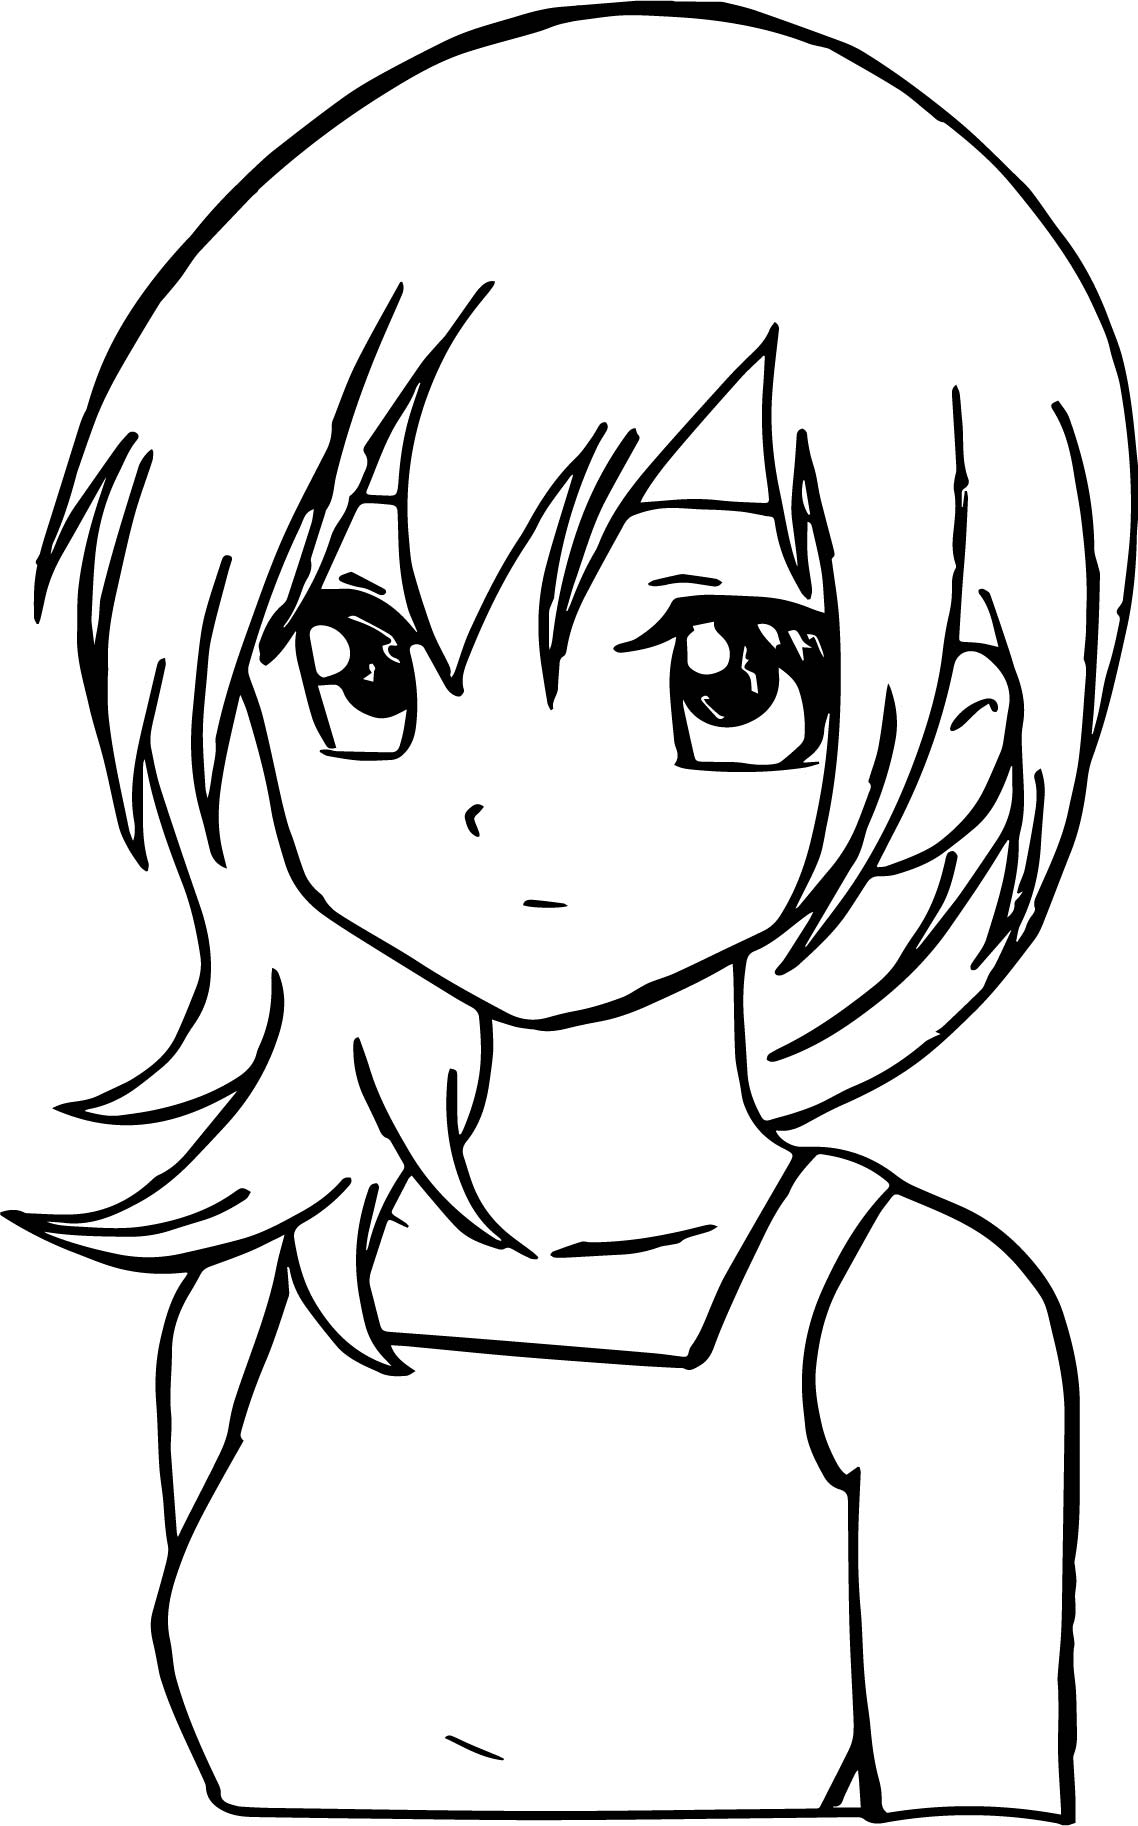 anime girl face coloring pages a anime face wiring diagram database girl coloring face pages anime